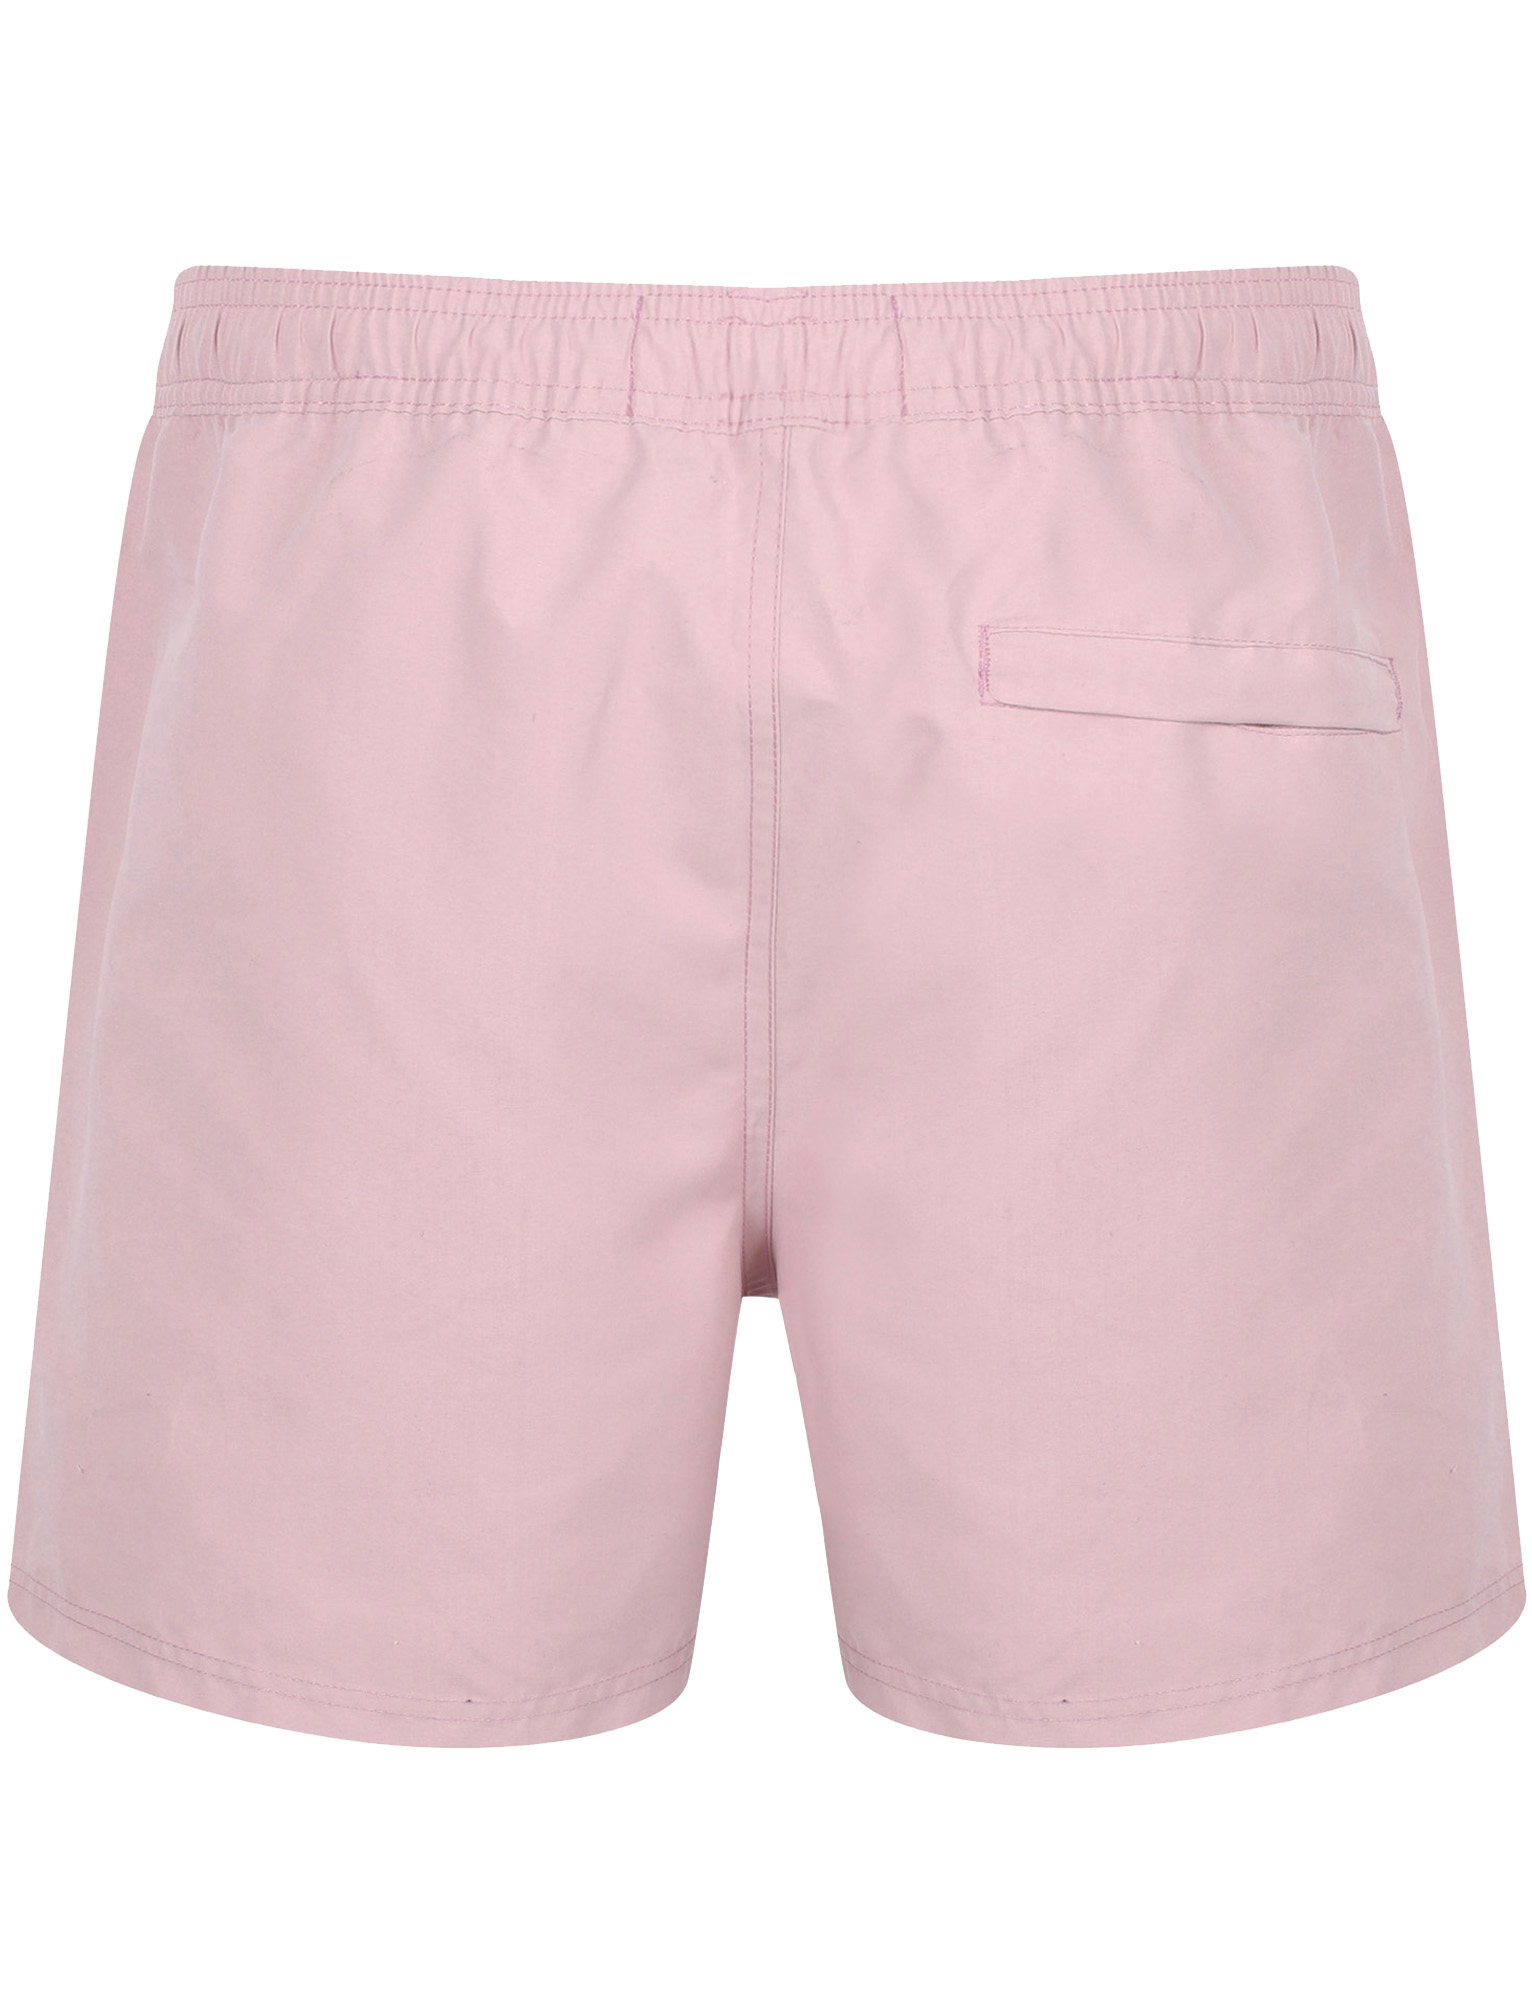 New-Mens-Tokyo-Laundry-Branded-Classic-Soft-Swim-Shorts-With-Pockets-Size-S-XXL thumbnail 26